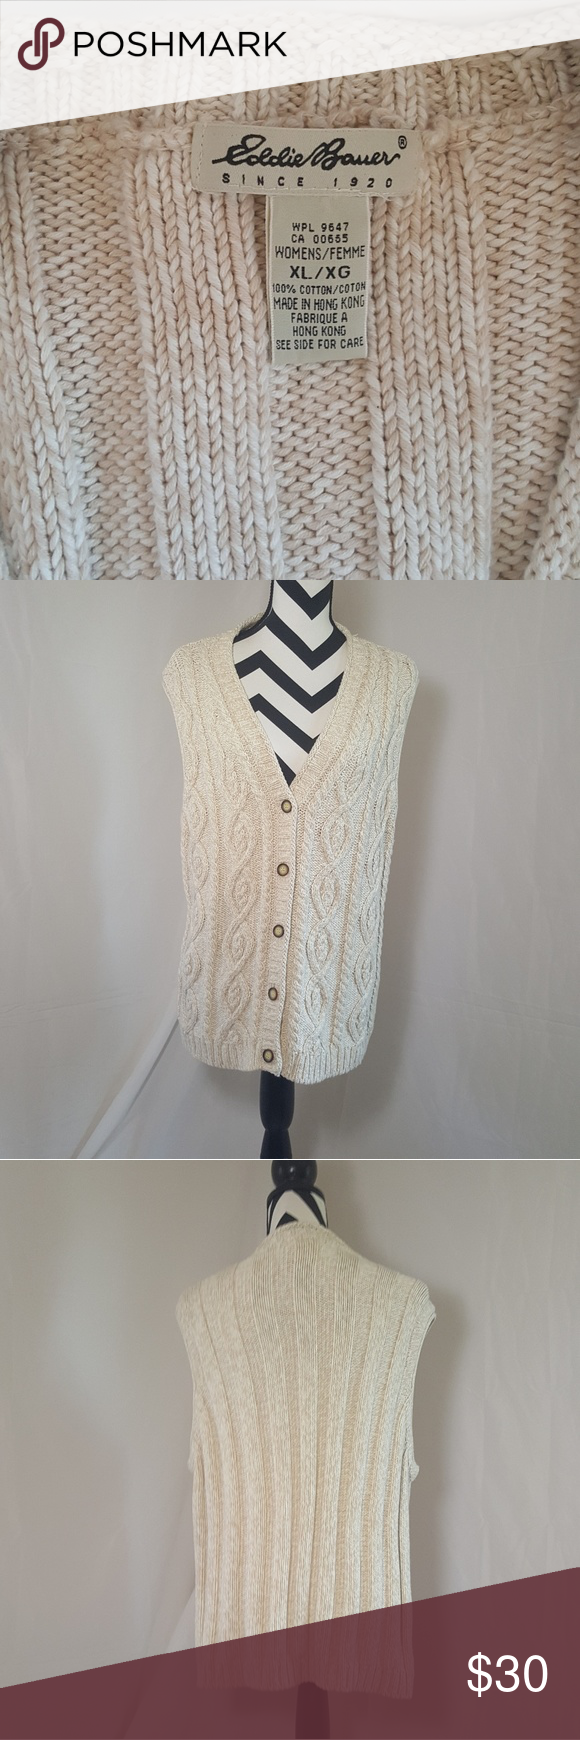 Eddie Bauer Women's XL Cable Knit Vest BUTTER SOFT | Knit vest ...